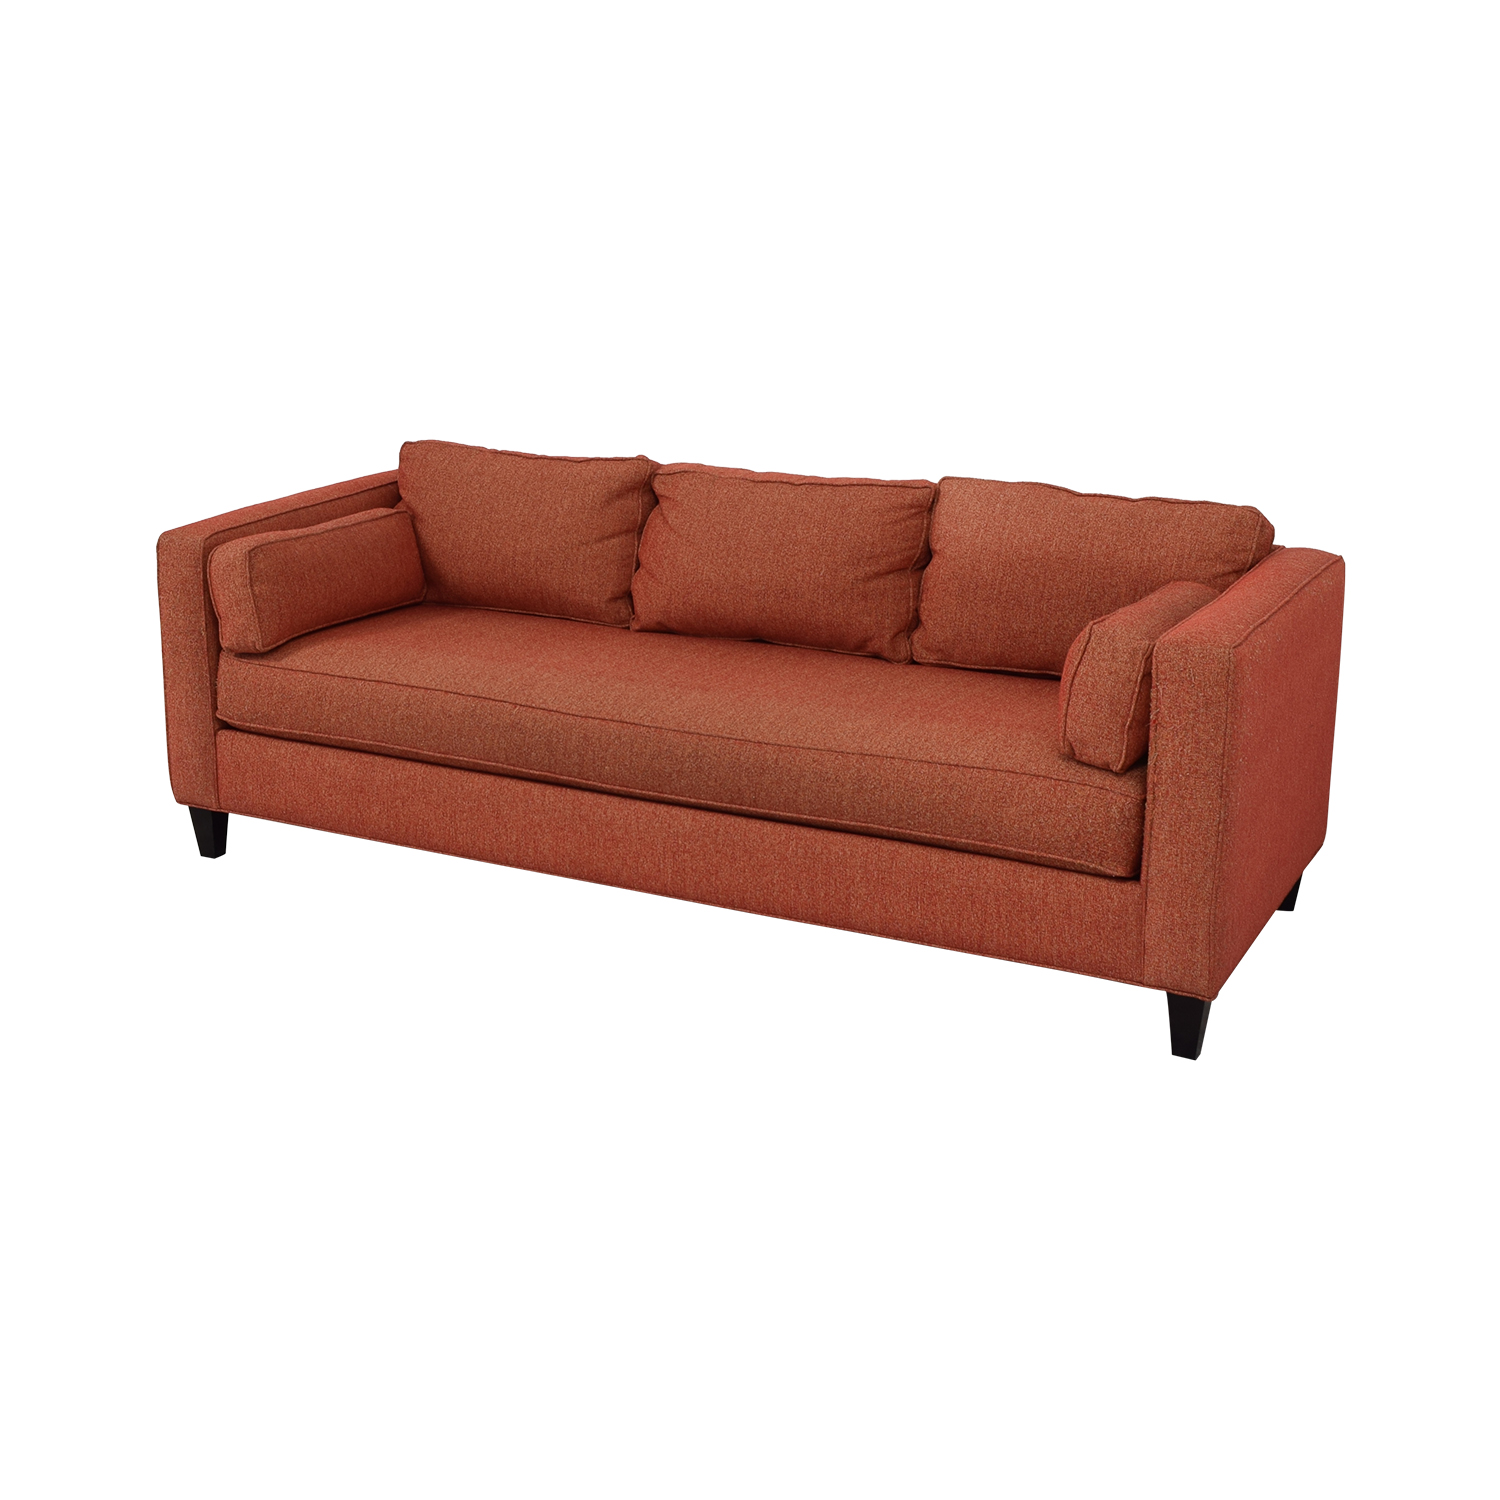 shop Younger Furniture Single Cushion Sofa Younger Furniture Classic Sofas